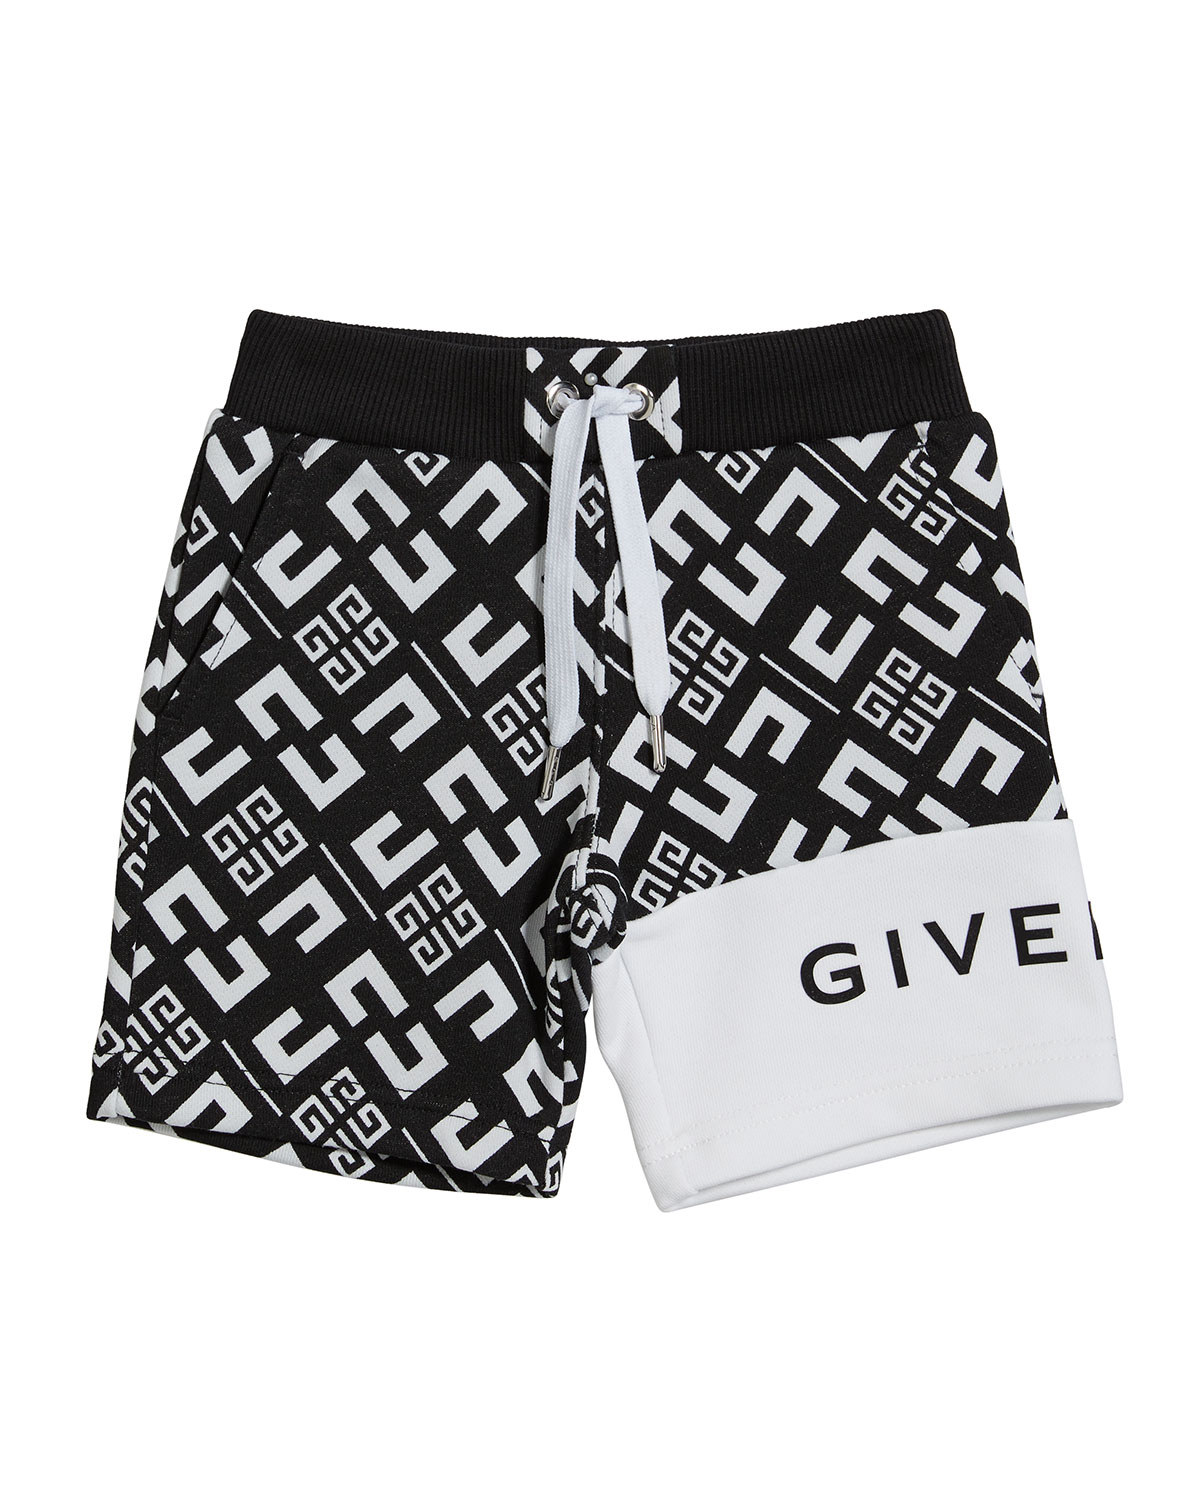 Givenchy Boy's 4-G Printed Drawstring Shorts, Size 2-3